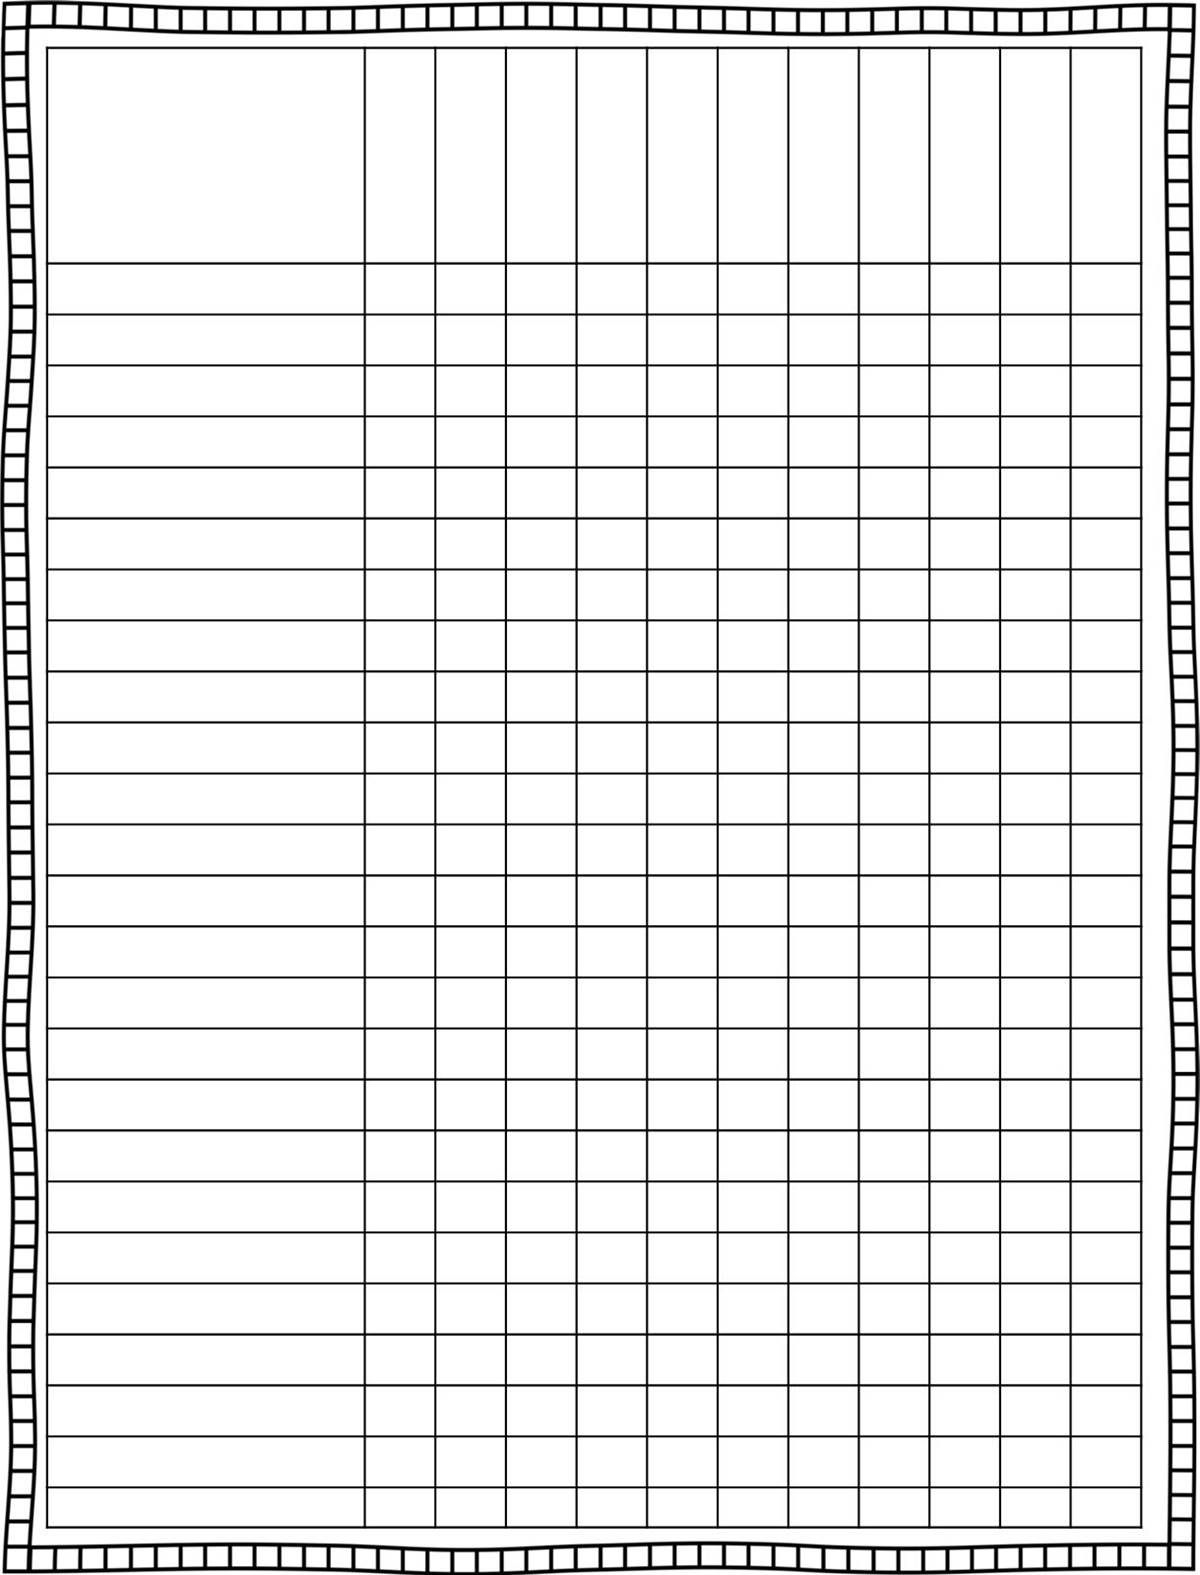 Classroom Schedule Template for Teachers | Finally, a cute lesson ...